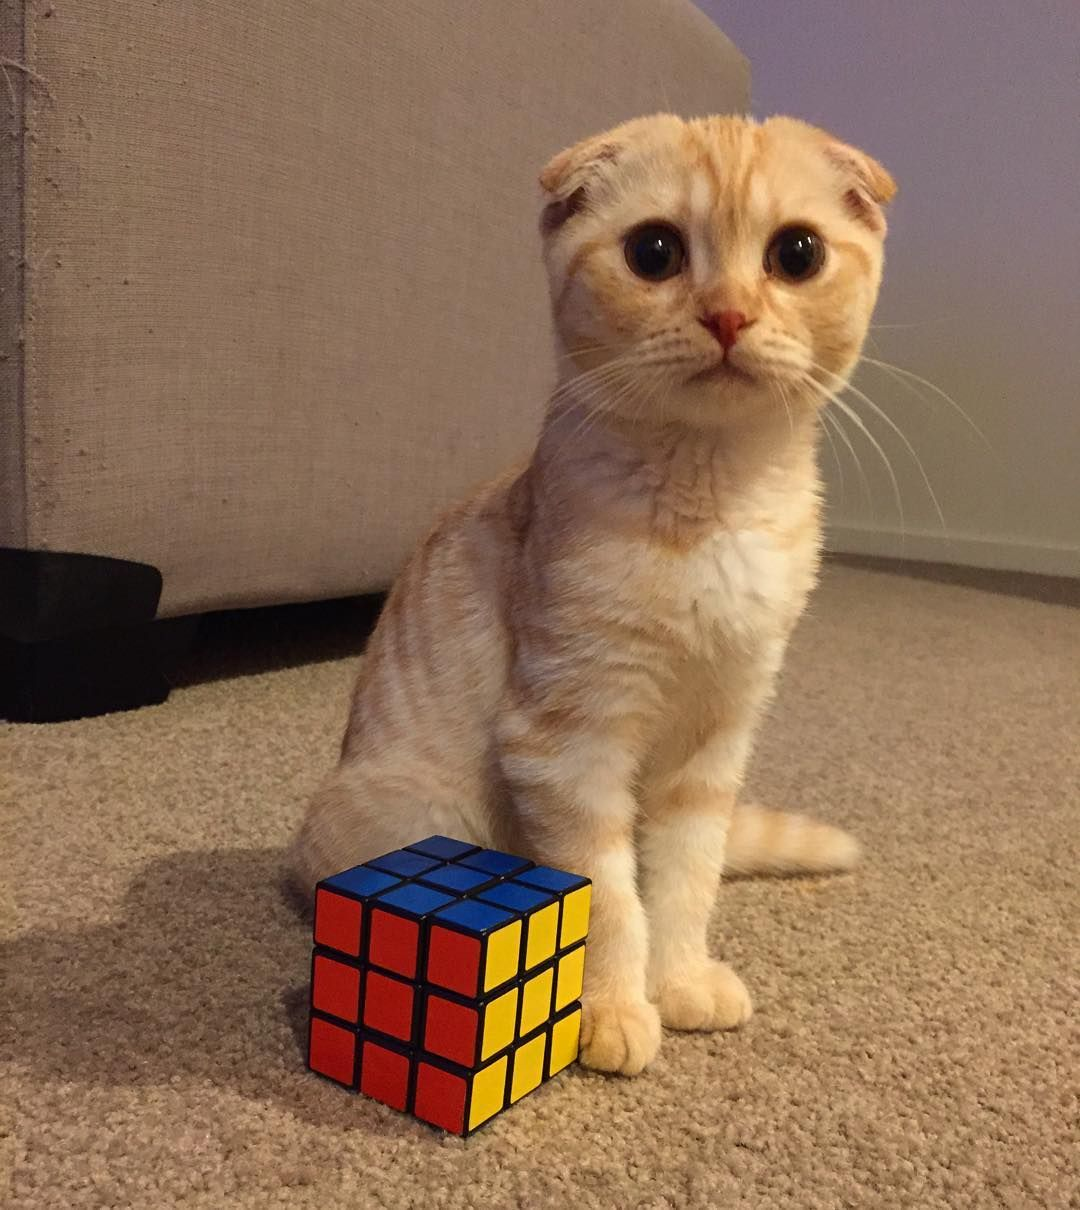 Pancake Just Competed His First Rubiks Cube At Just 4 Months Old What A Clever Kitten He Looks Pretty Proud Of My Himself Igcutest Cat Day Kittens Cool Cats